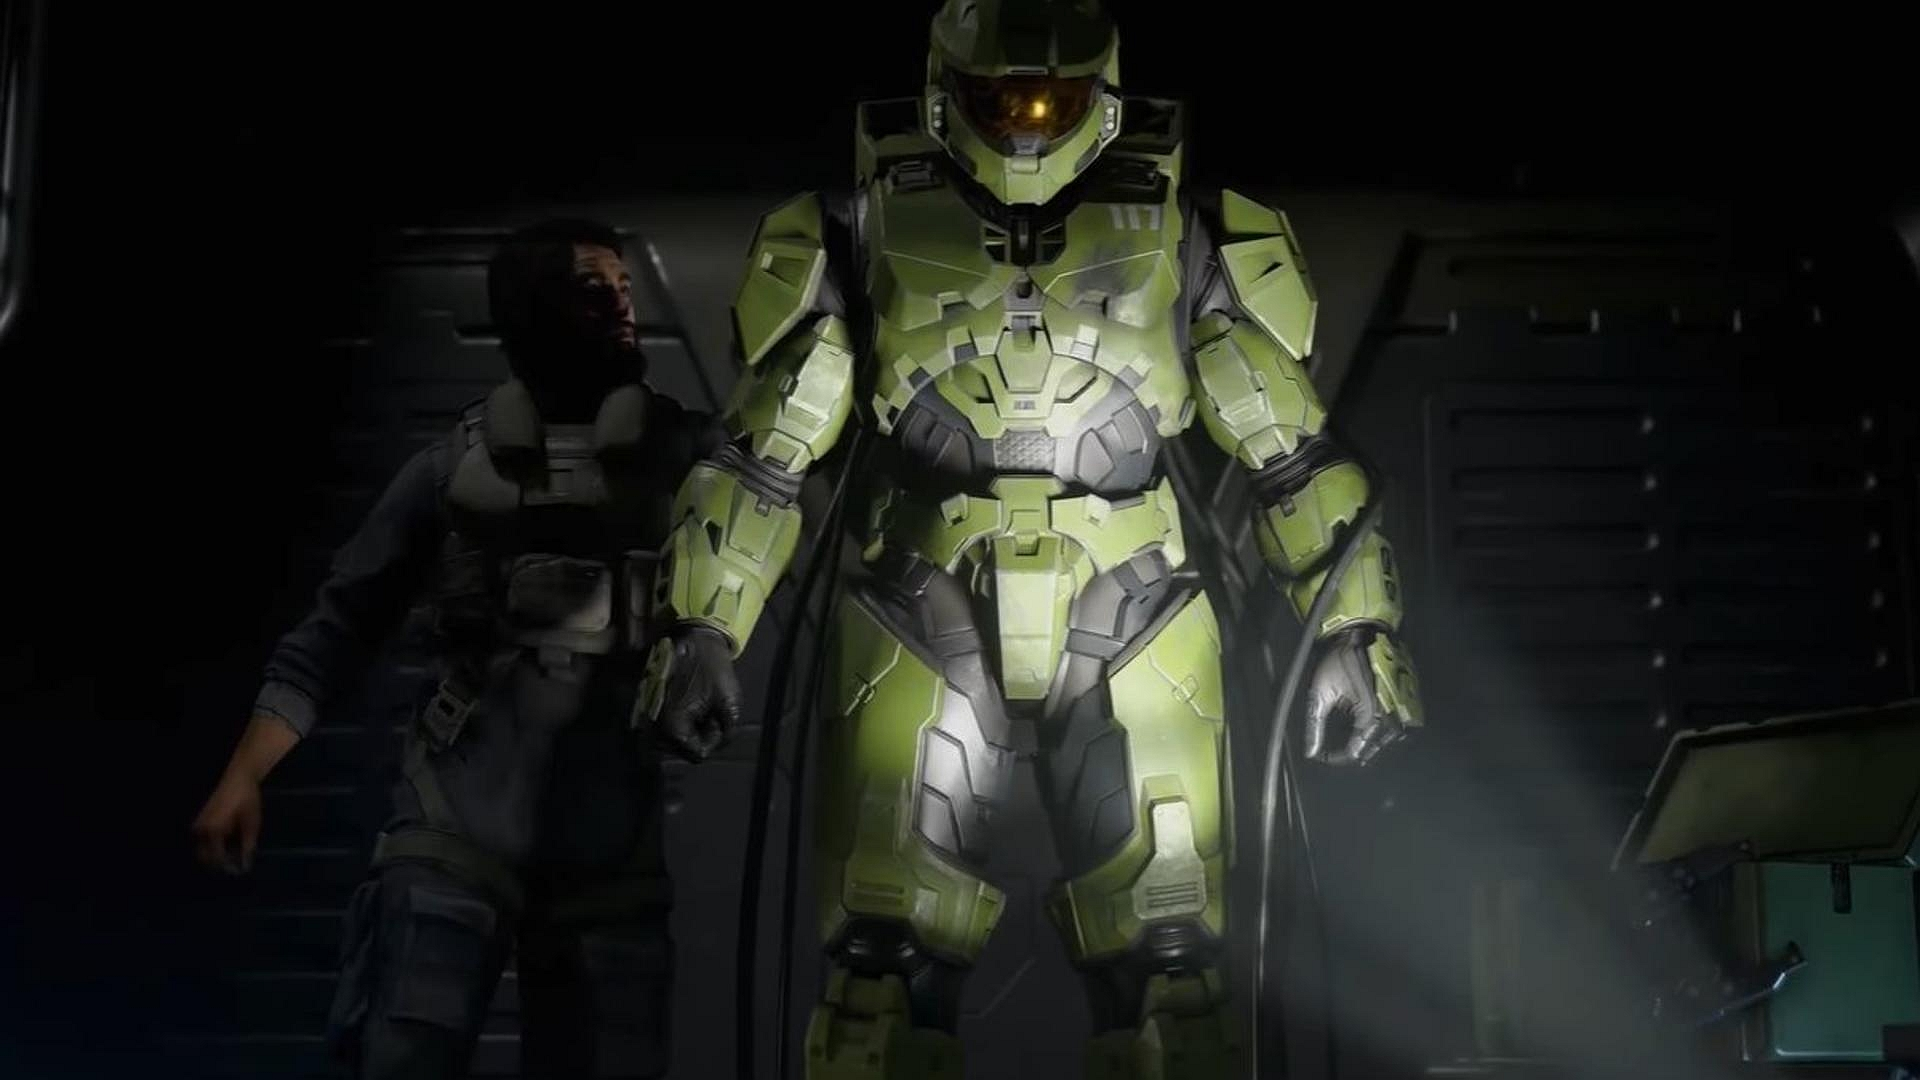 343i Halo Infinite On Xbox One Wont Be Second Class Weve Got A